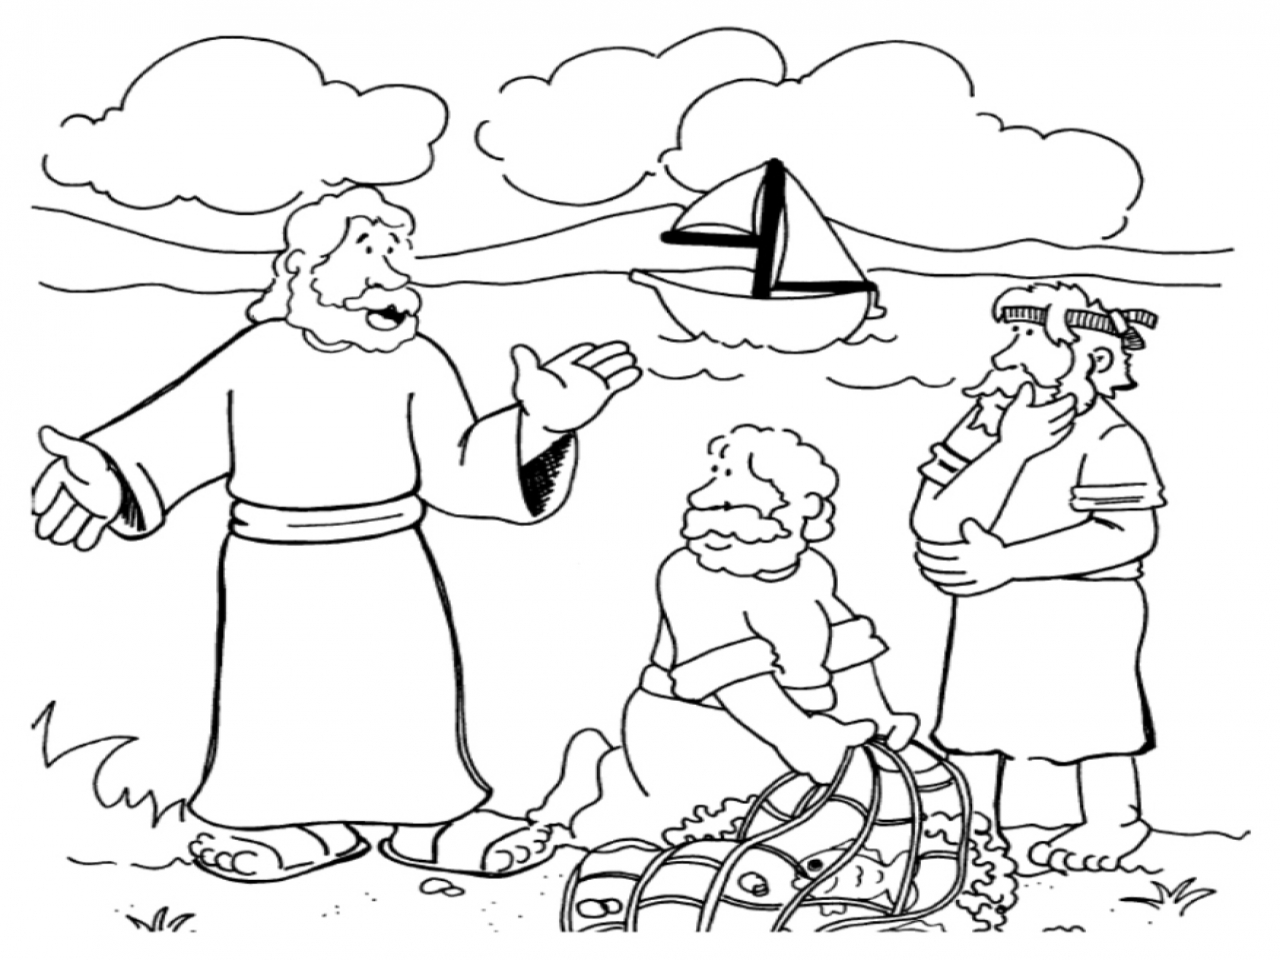 The Apostles Coloring Pages - Jesus calls the 12 apostles | Bible ... | 960x1280